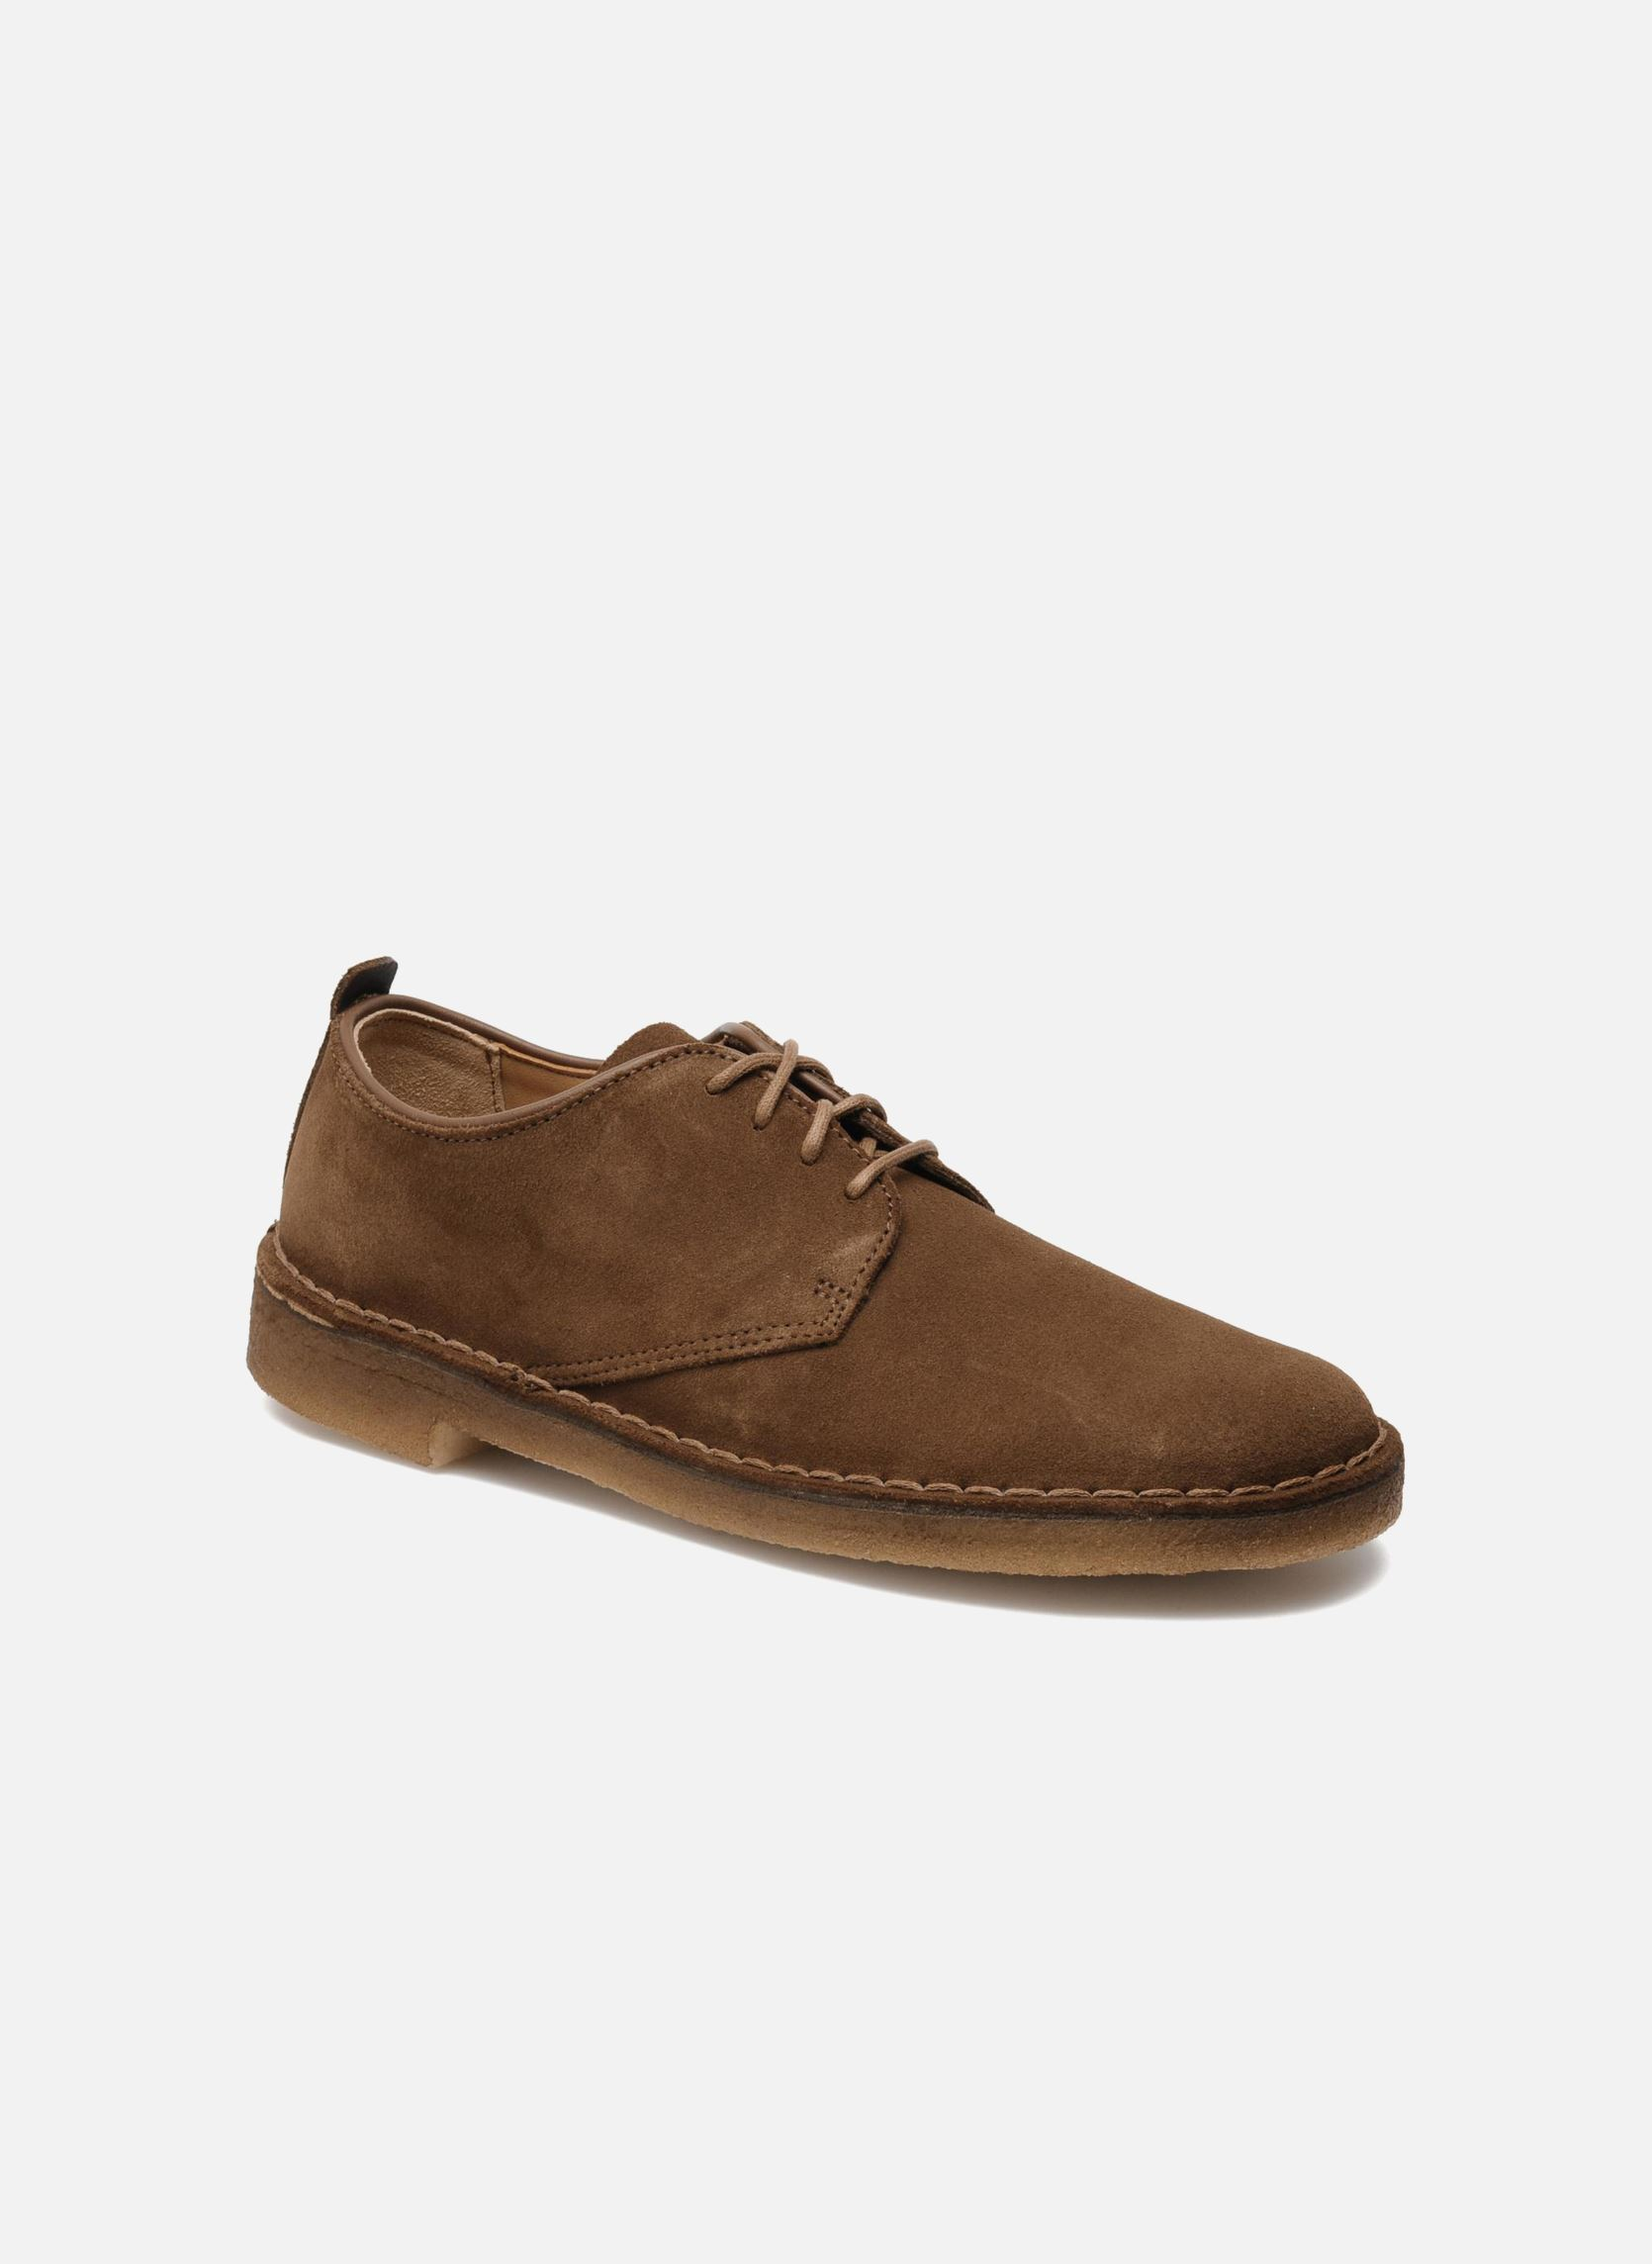 Clarks Originals Desert London Lace Up Shoes In Brown At